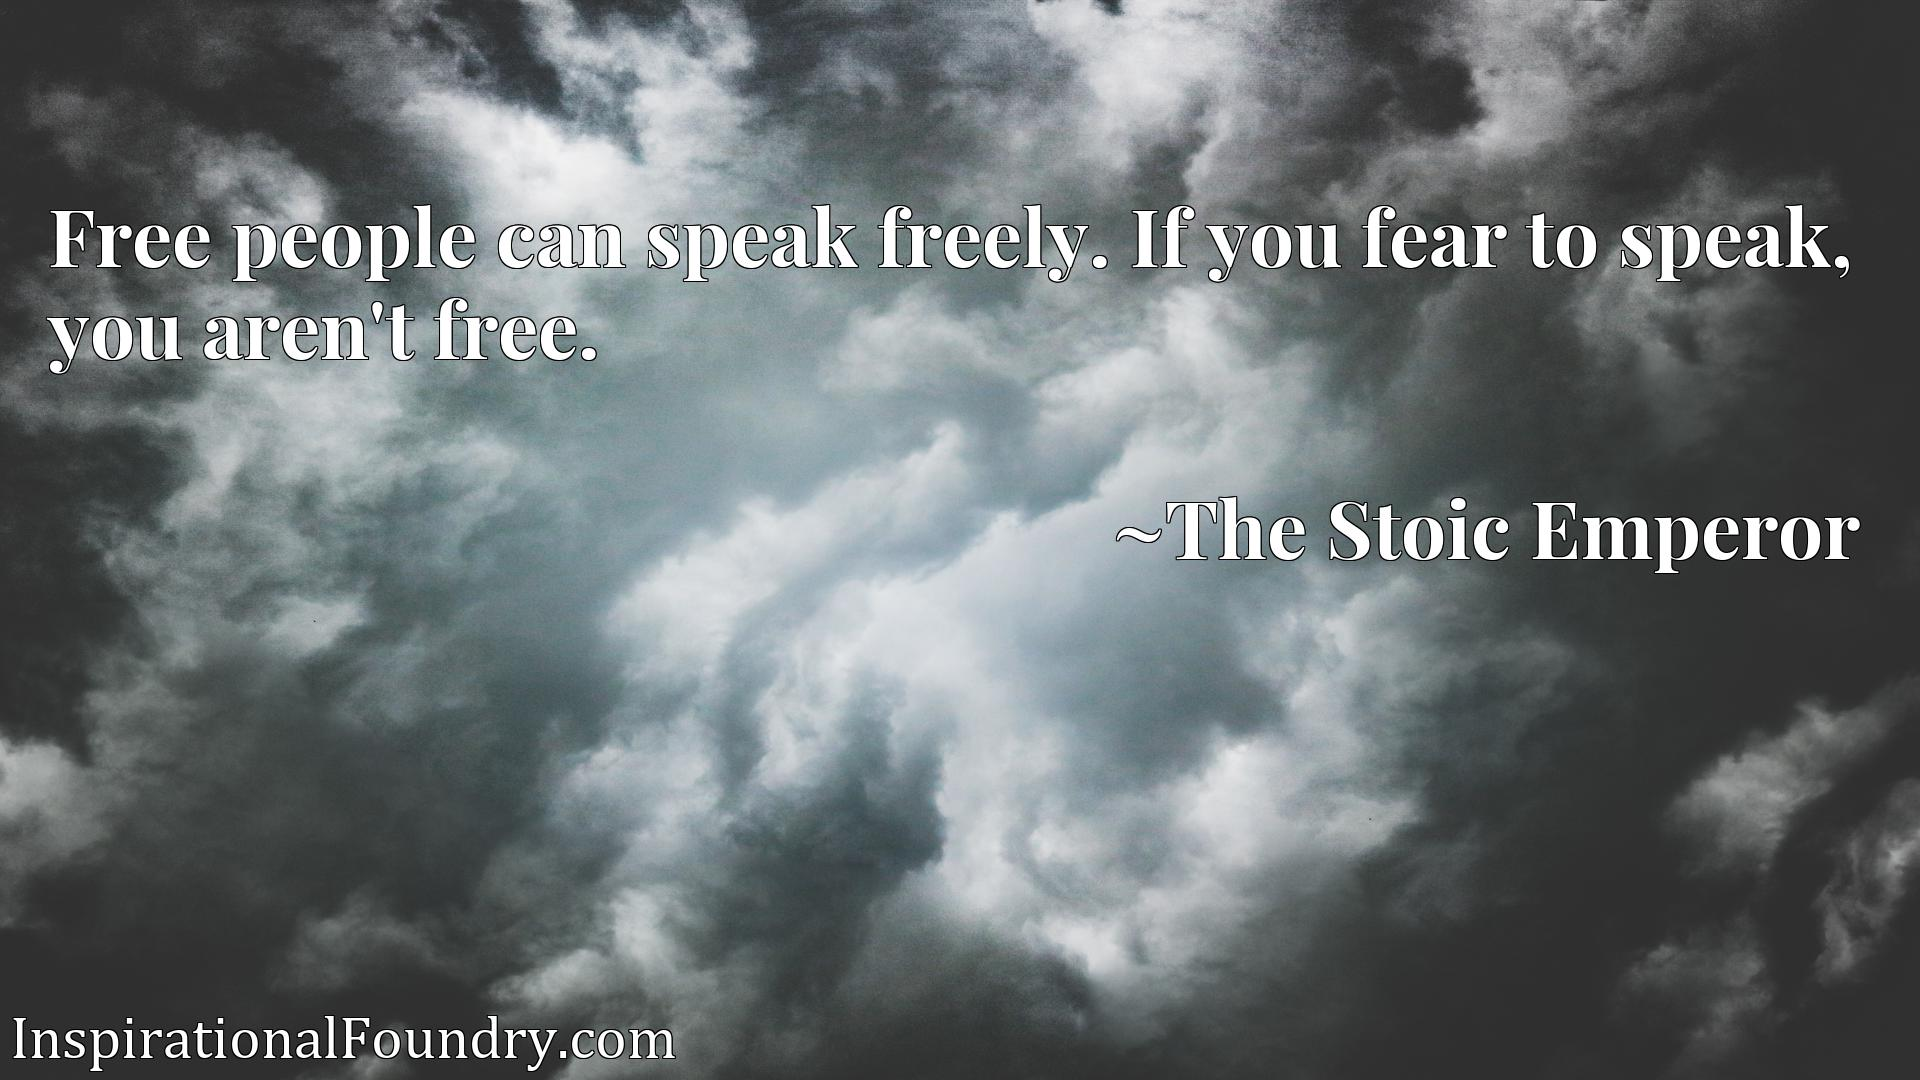 Free people can speak freely. If you fear to speak, you aren't free.